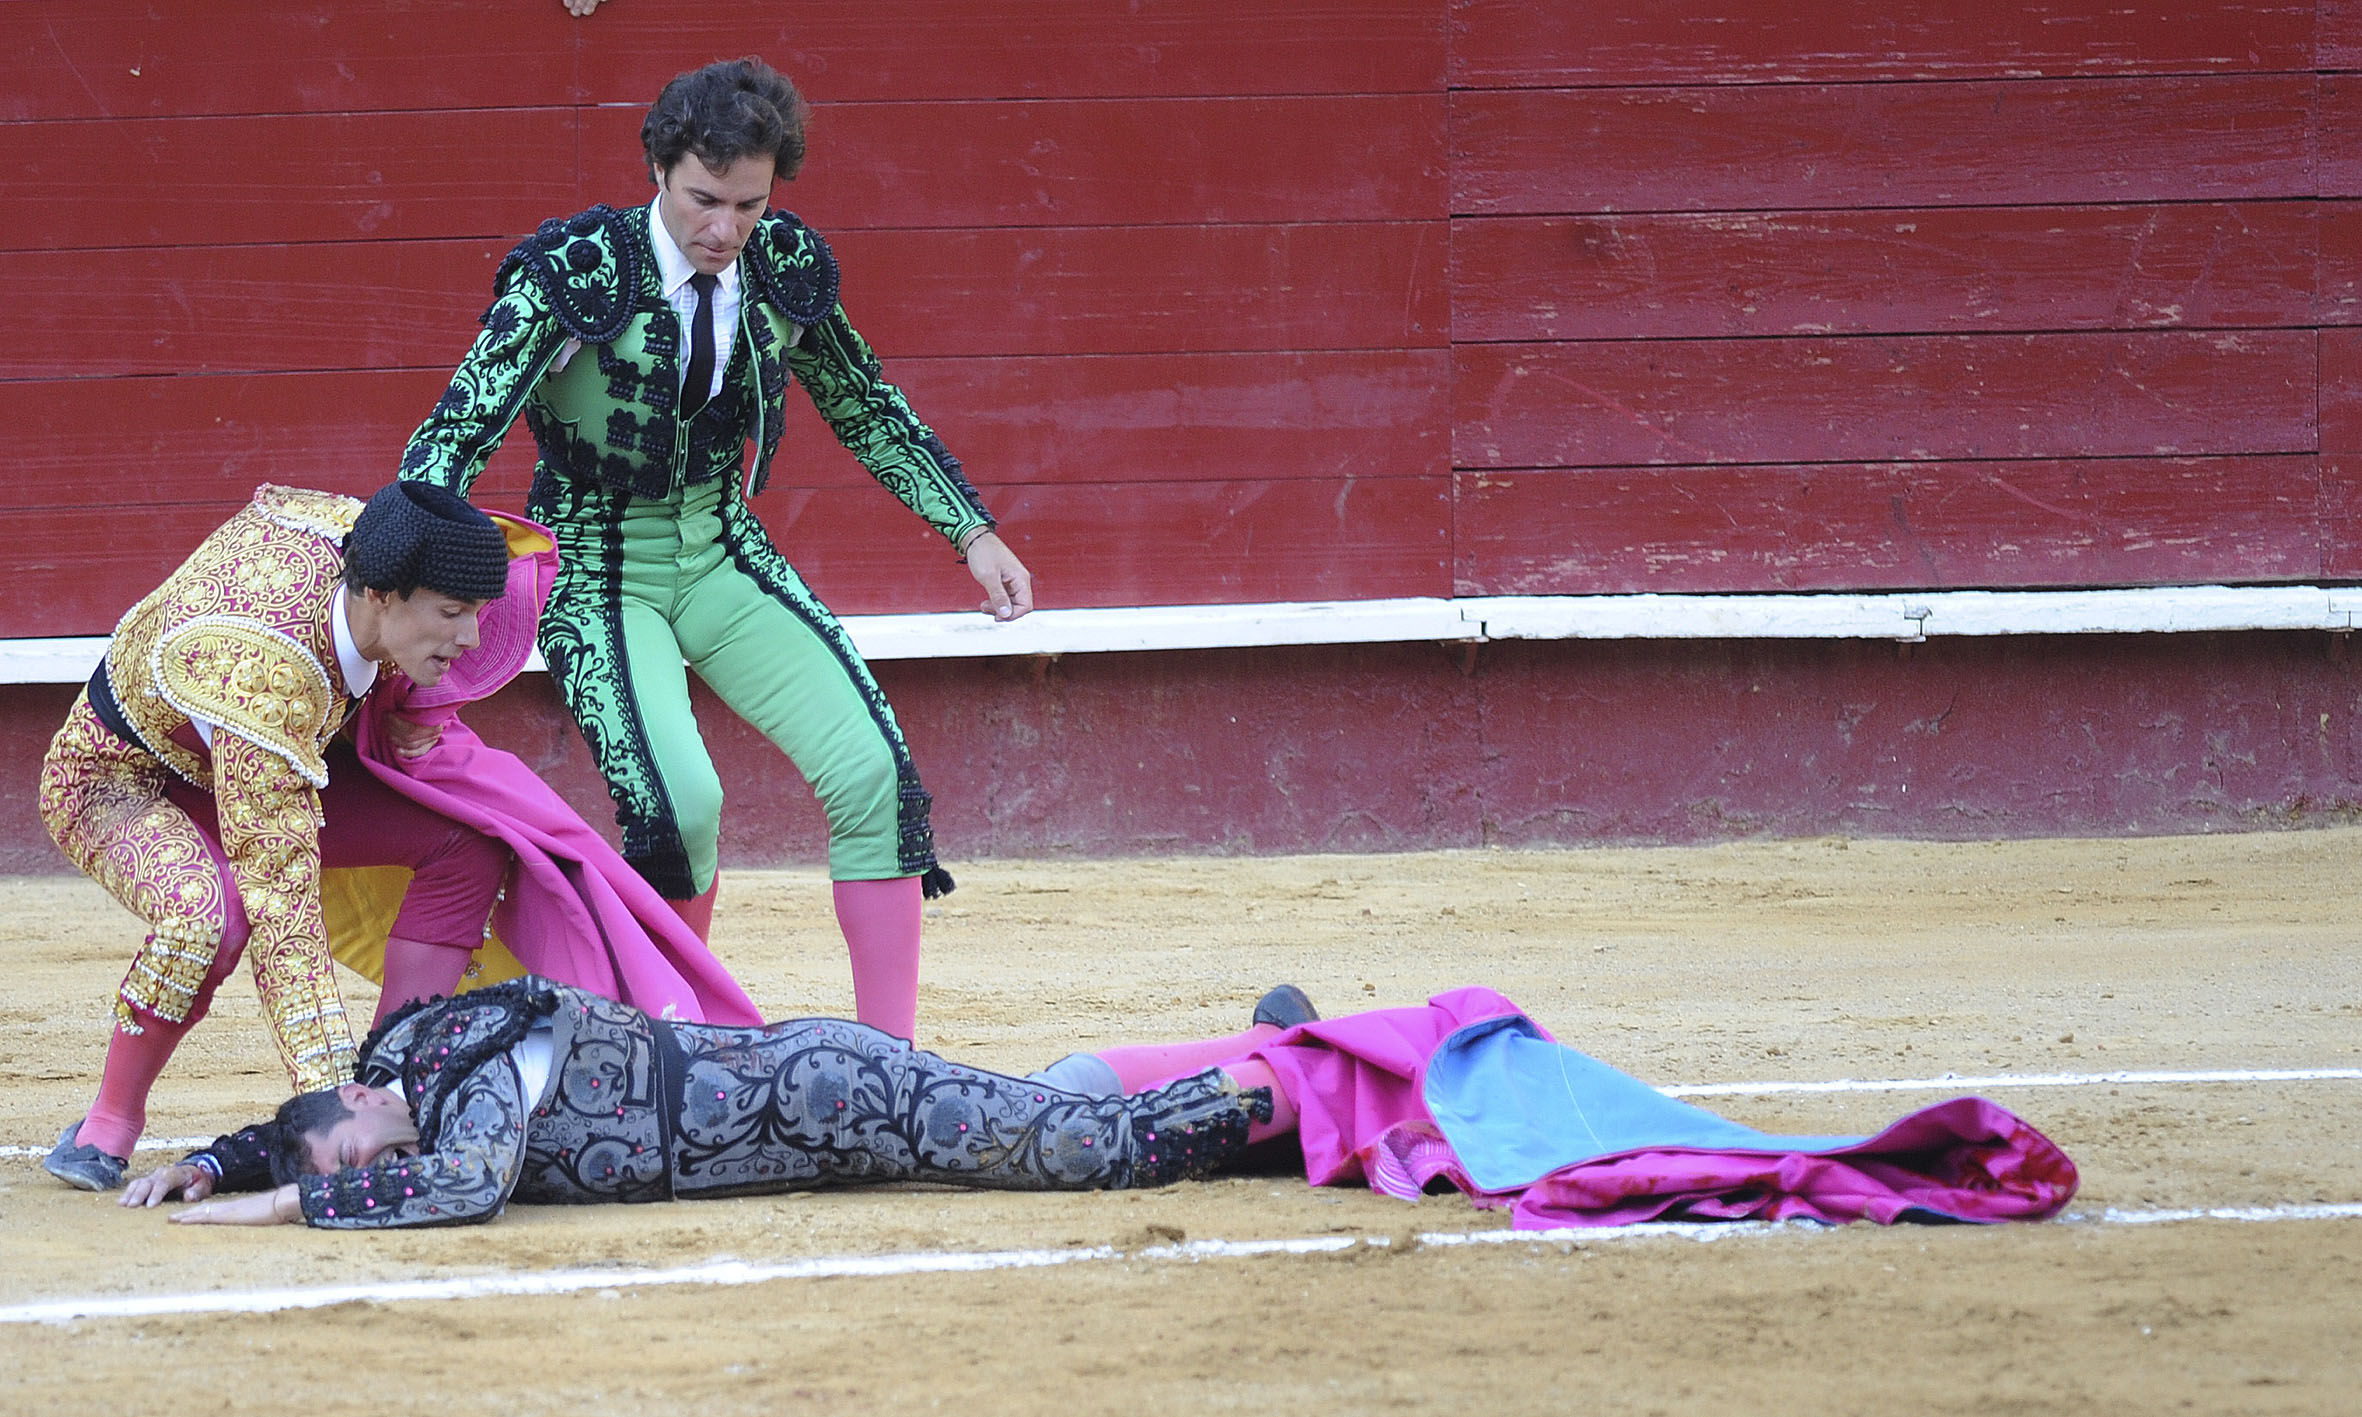 Government stops offering specific support to bullfighting